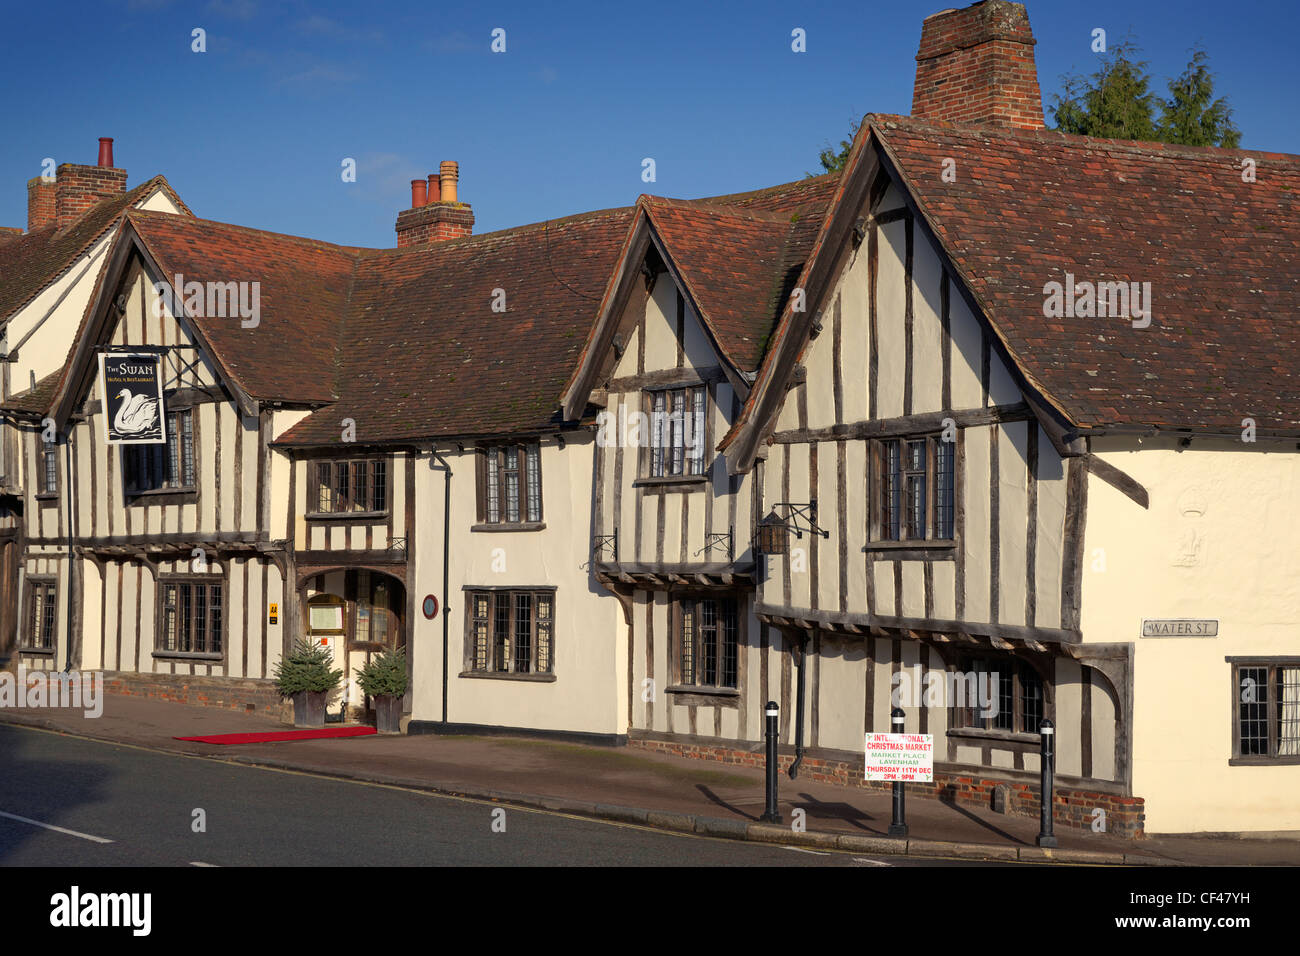 Exterior of the Swan Hotel and Restaurant in Lavenham. Stock Photo